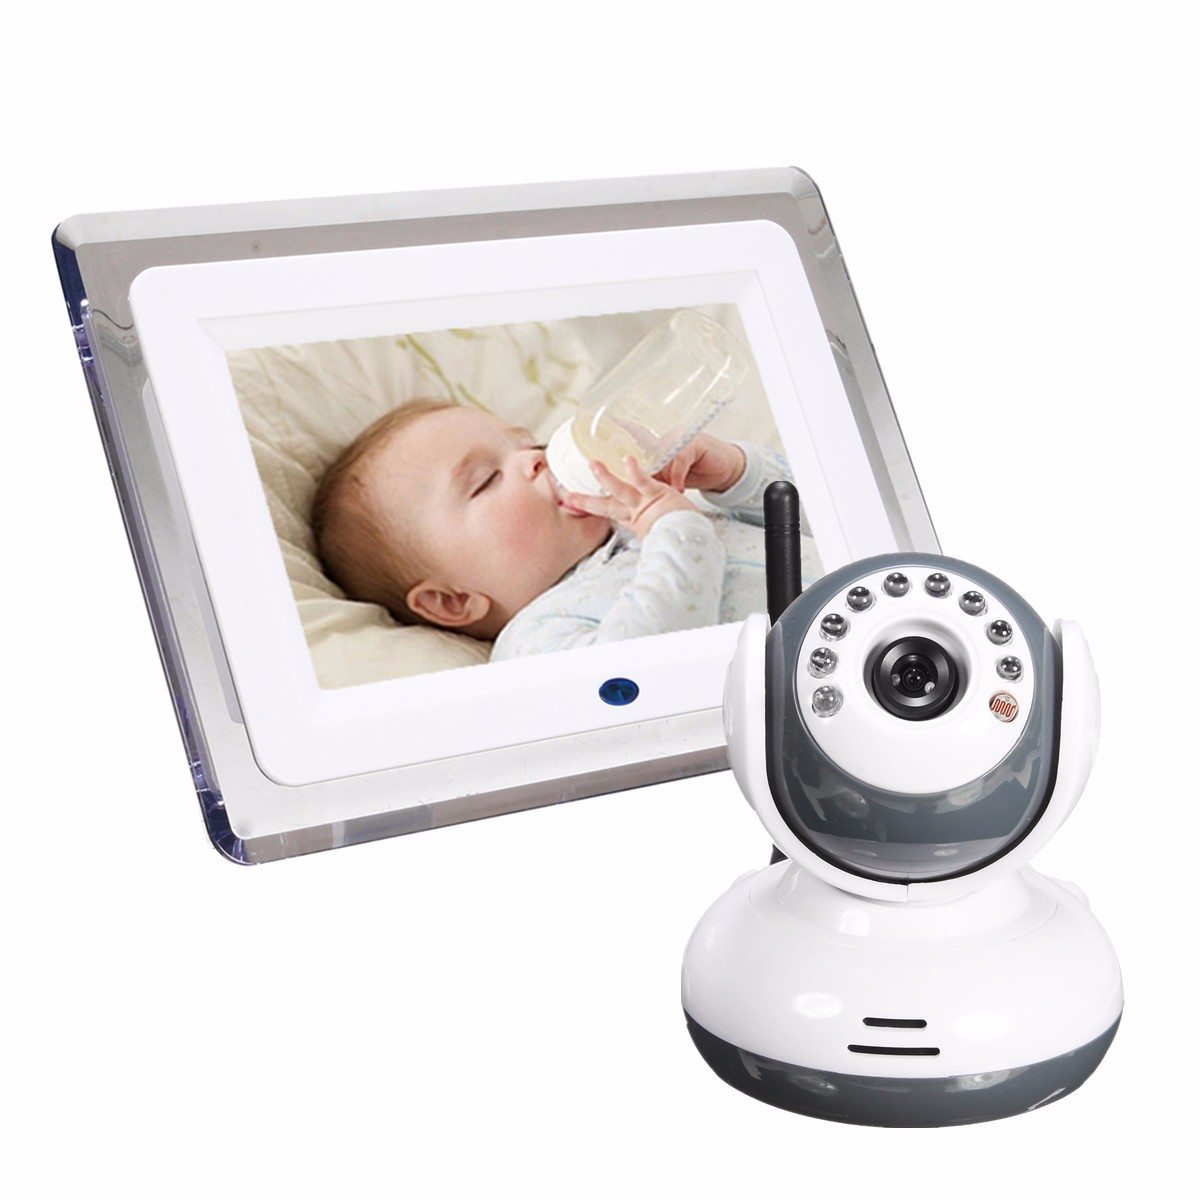 Safurance 2.4G Wireless Digital 7 LCD Baby Monitor Camera Audio Talk Video Night Vision Security Camera bonlor 2 4g wireless digital 3 5 lcd baby monitor camera audio talk video night vision high resolution home security